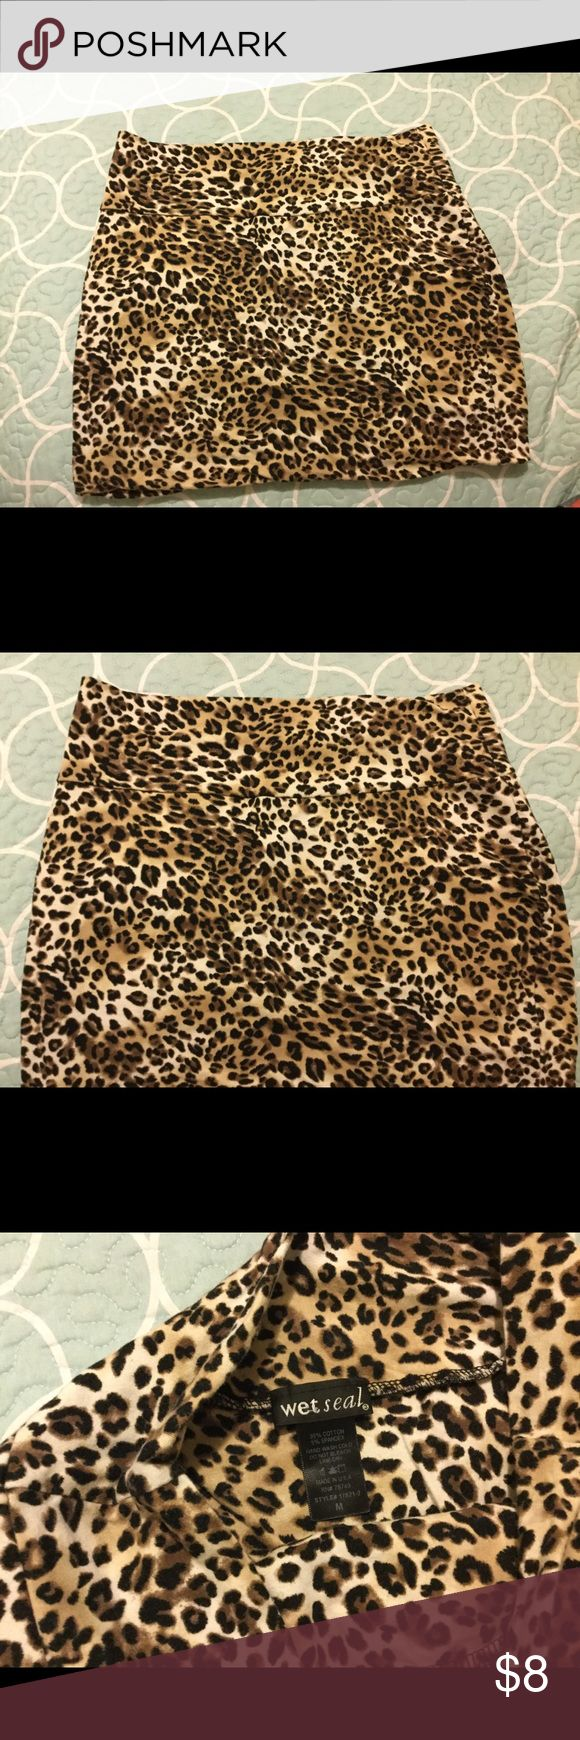 💝Cute cheetah skirt! Only tried on! Cheetah isn't really my style! But cute! 😊 Wet Seal Skirts Mini